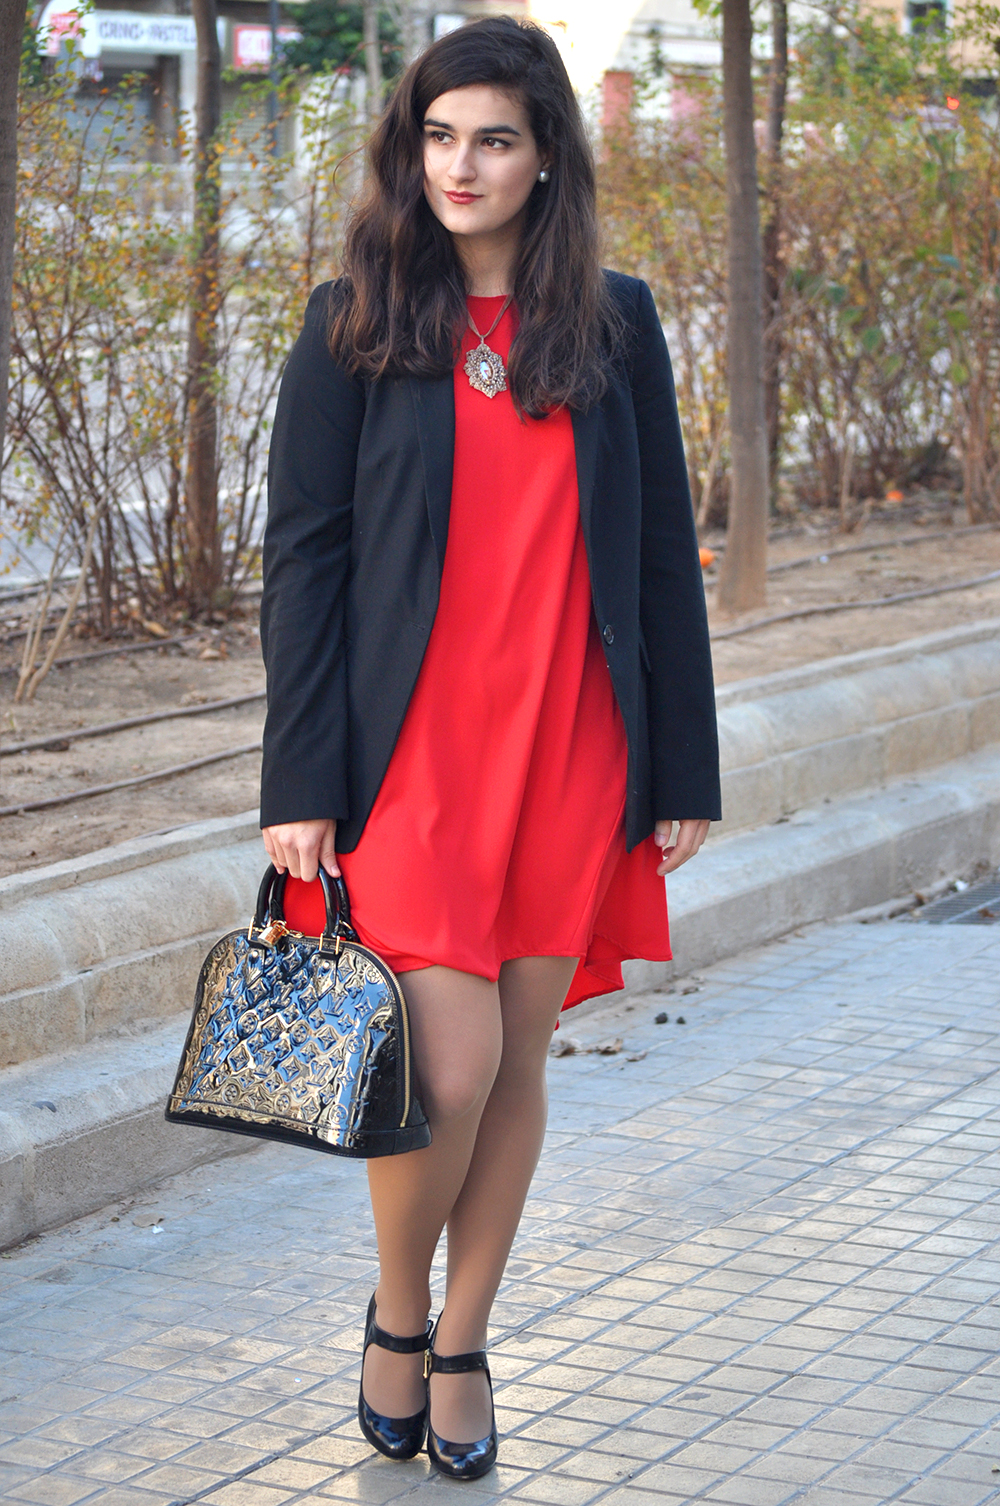 something fashion blogger valencia spain, amanda r. red hm blazer new year's eve louis vuitton bag alma vernis black fblogger, emporio armani shoes wrap coat streetstyle 2015